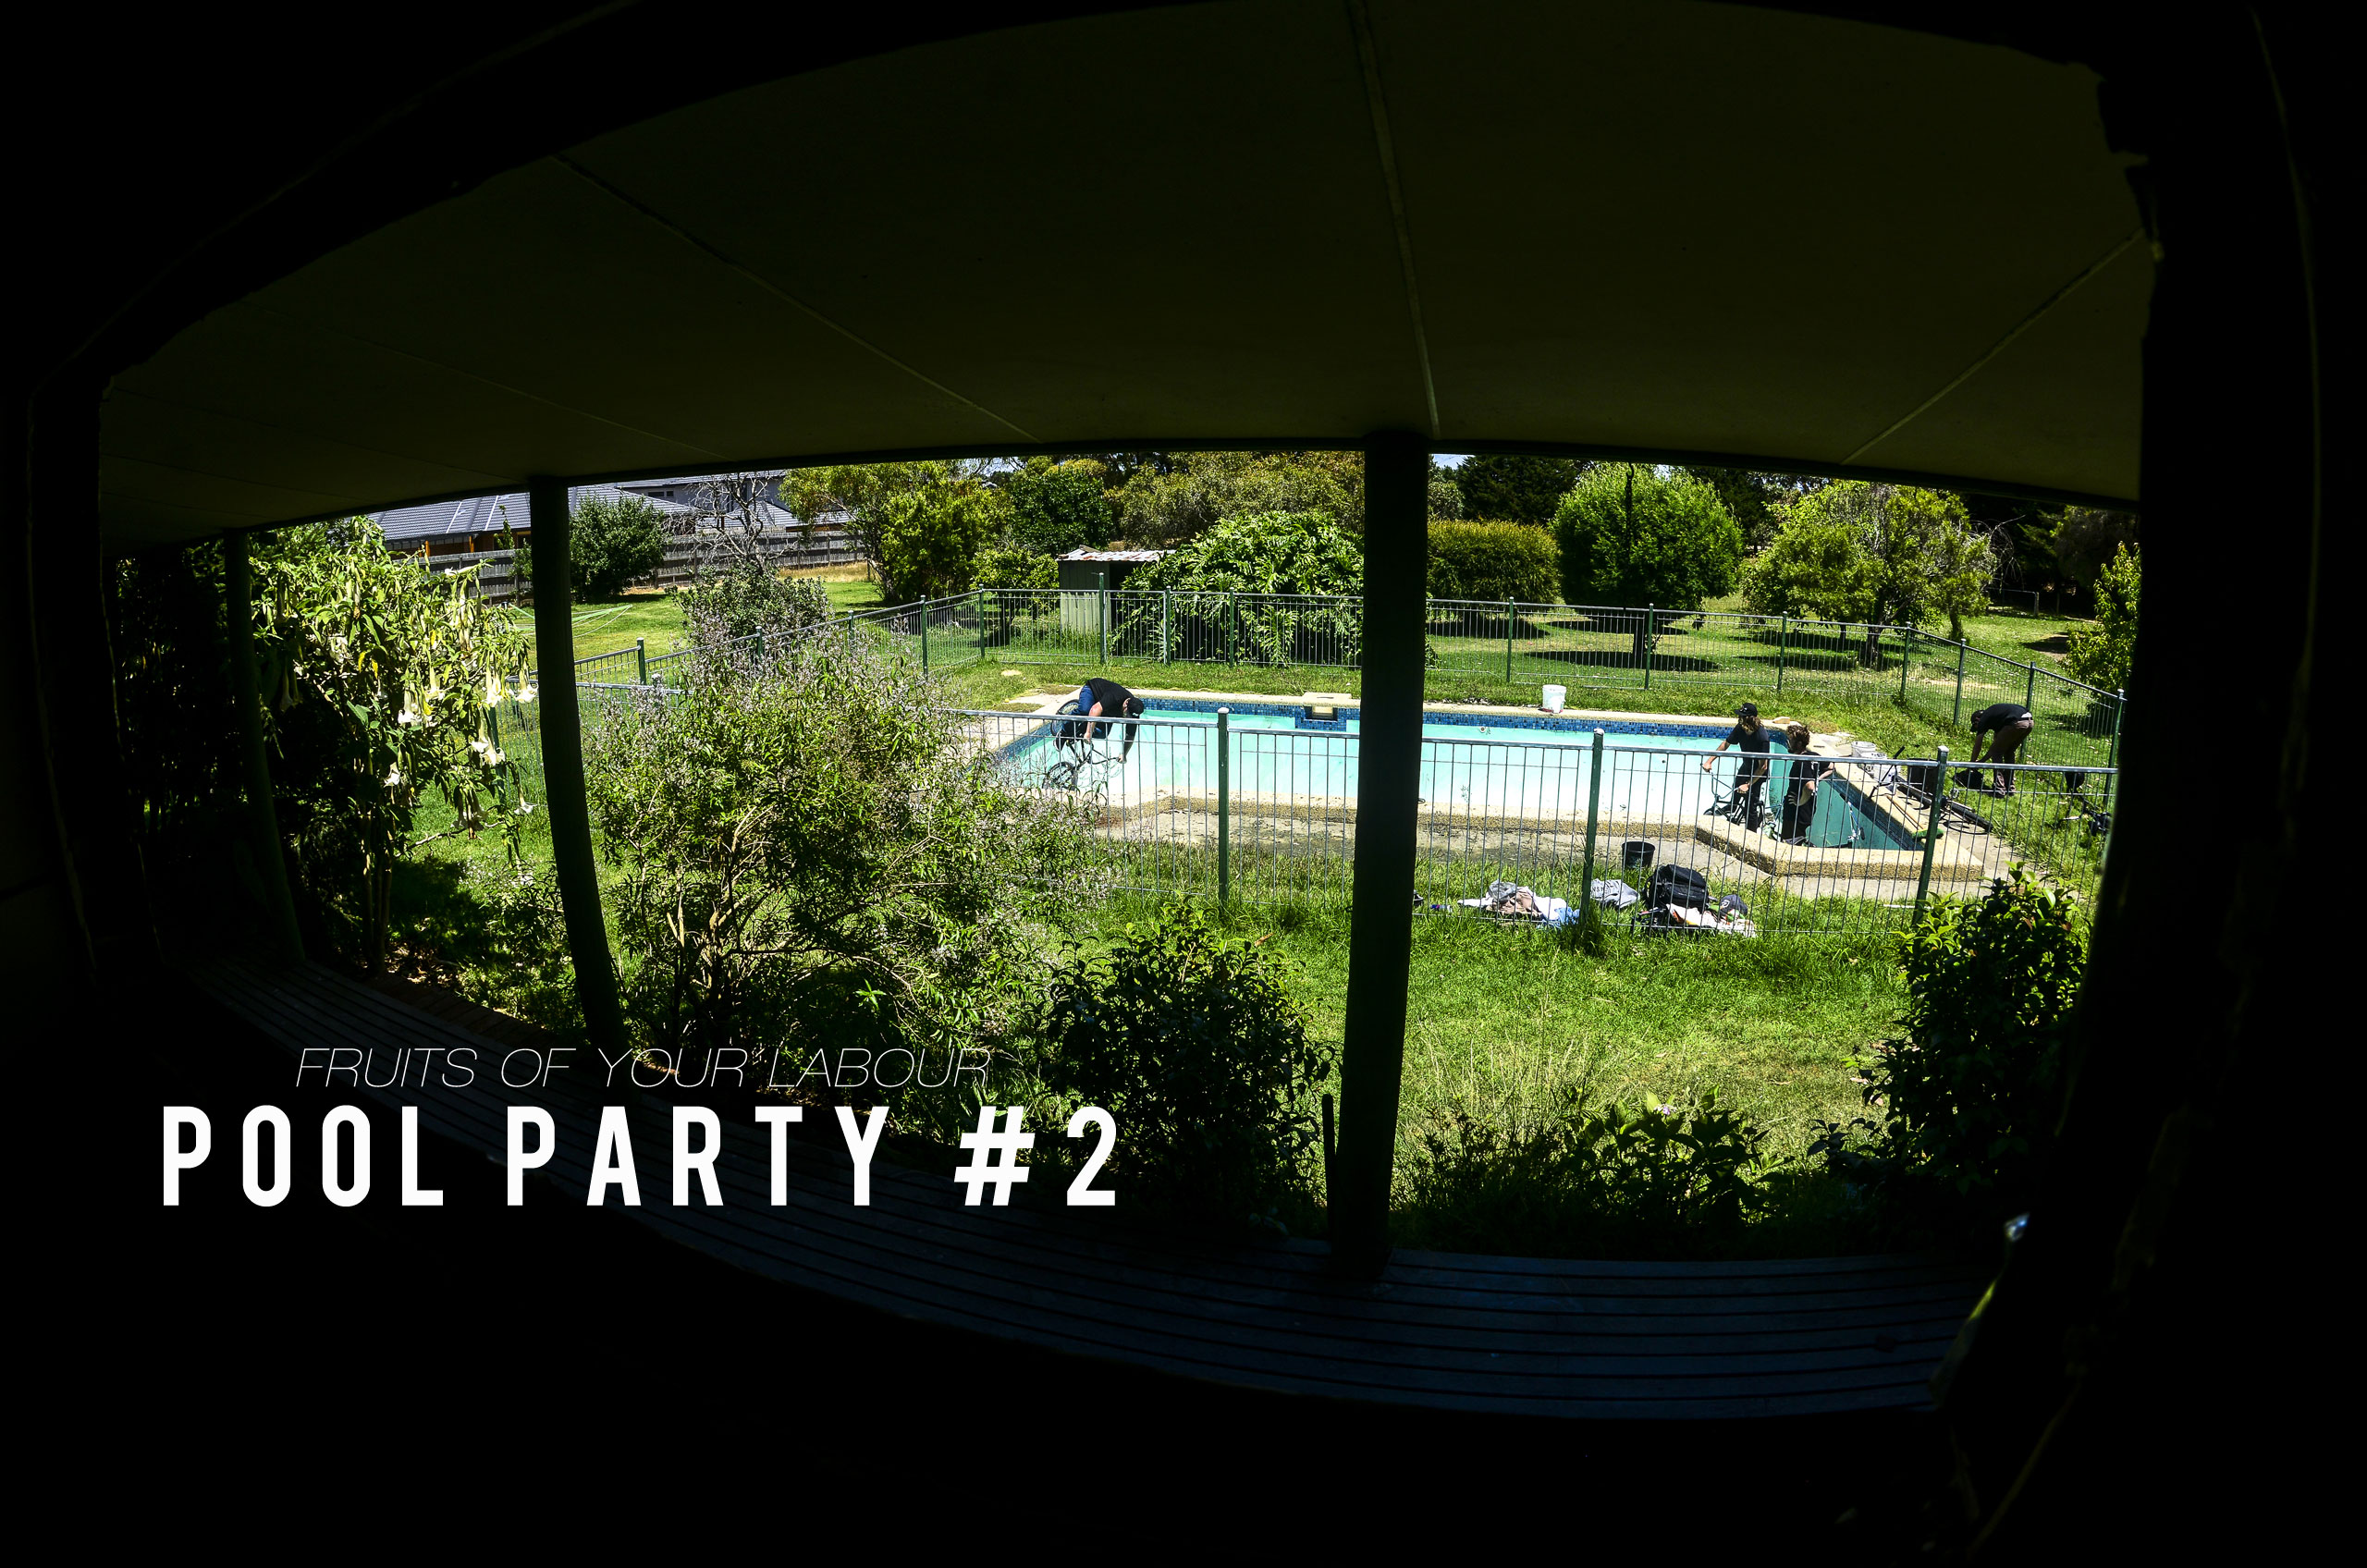 FRUITS OF YOUR LABOUR – POOL PARTY 2